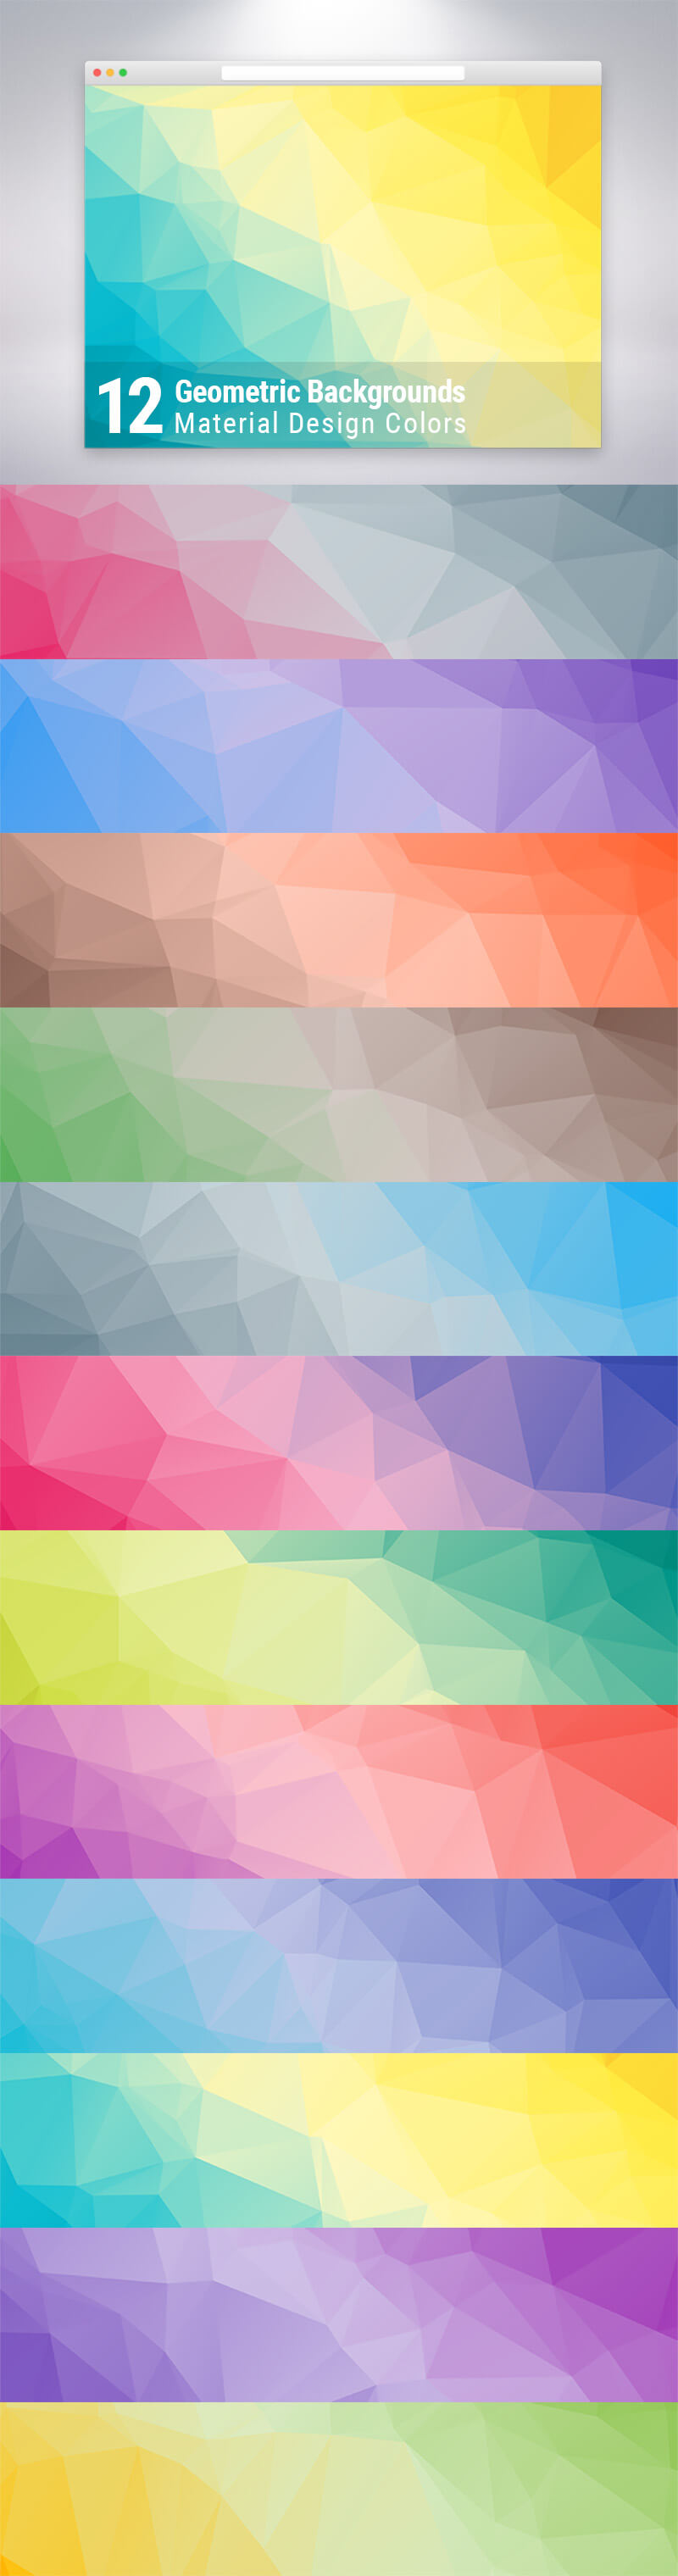 Material Design Geometric Backgrounds Preview